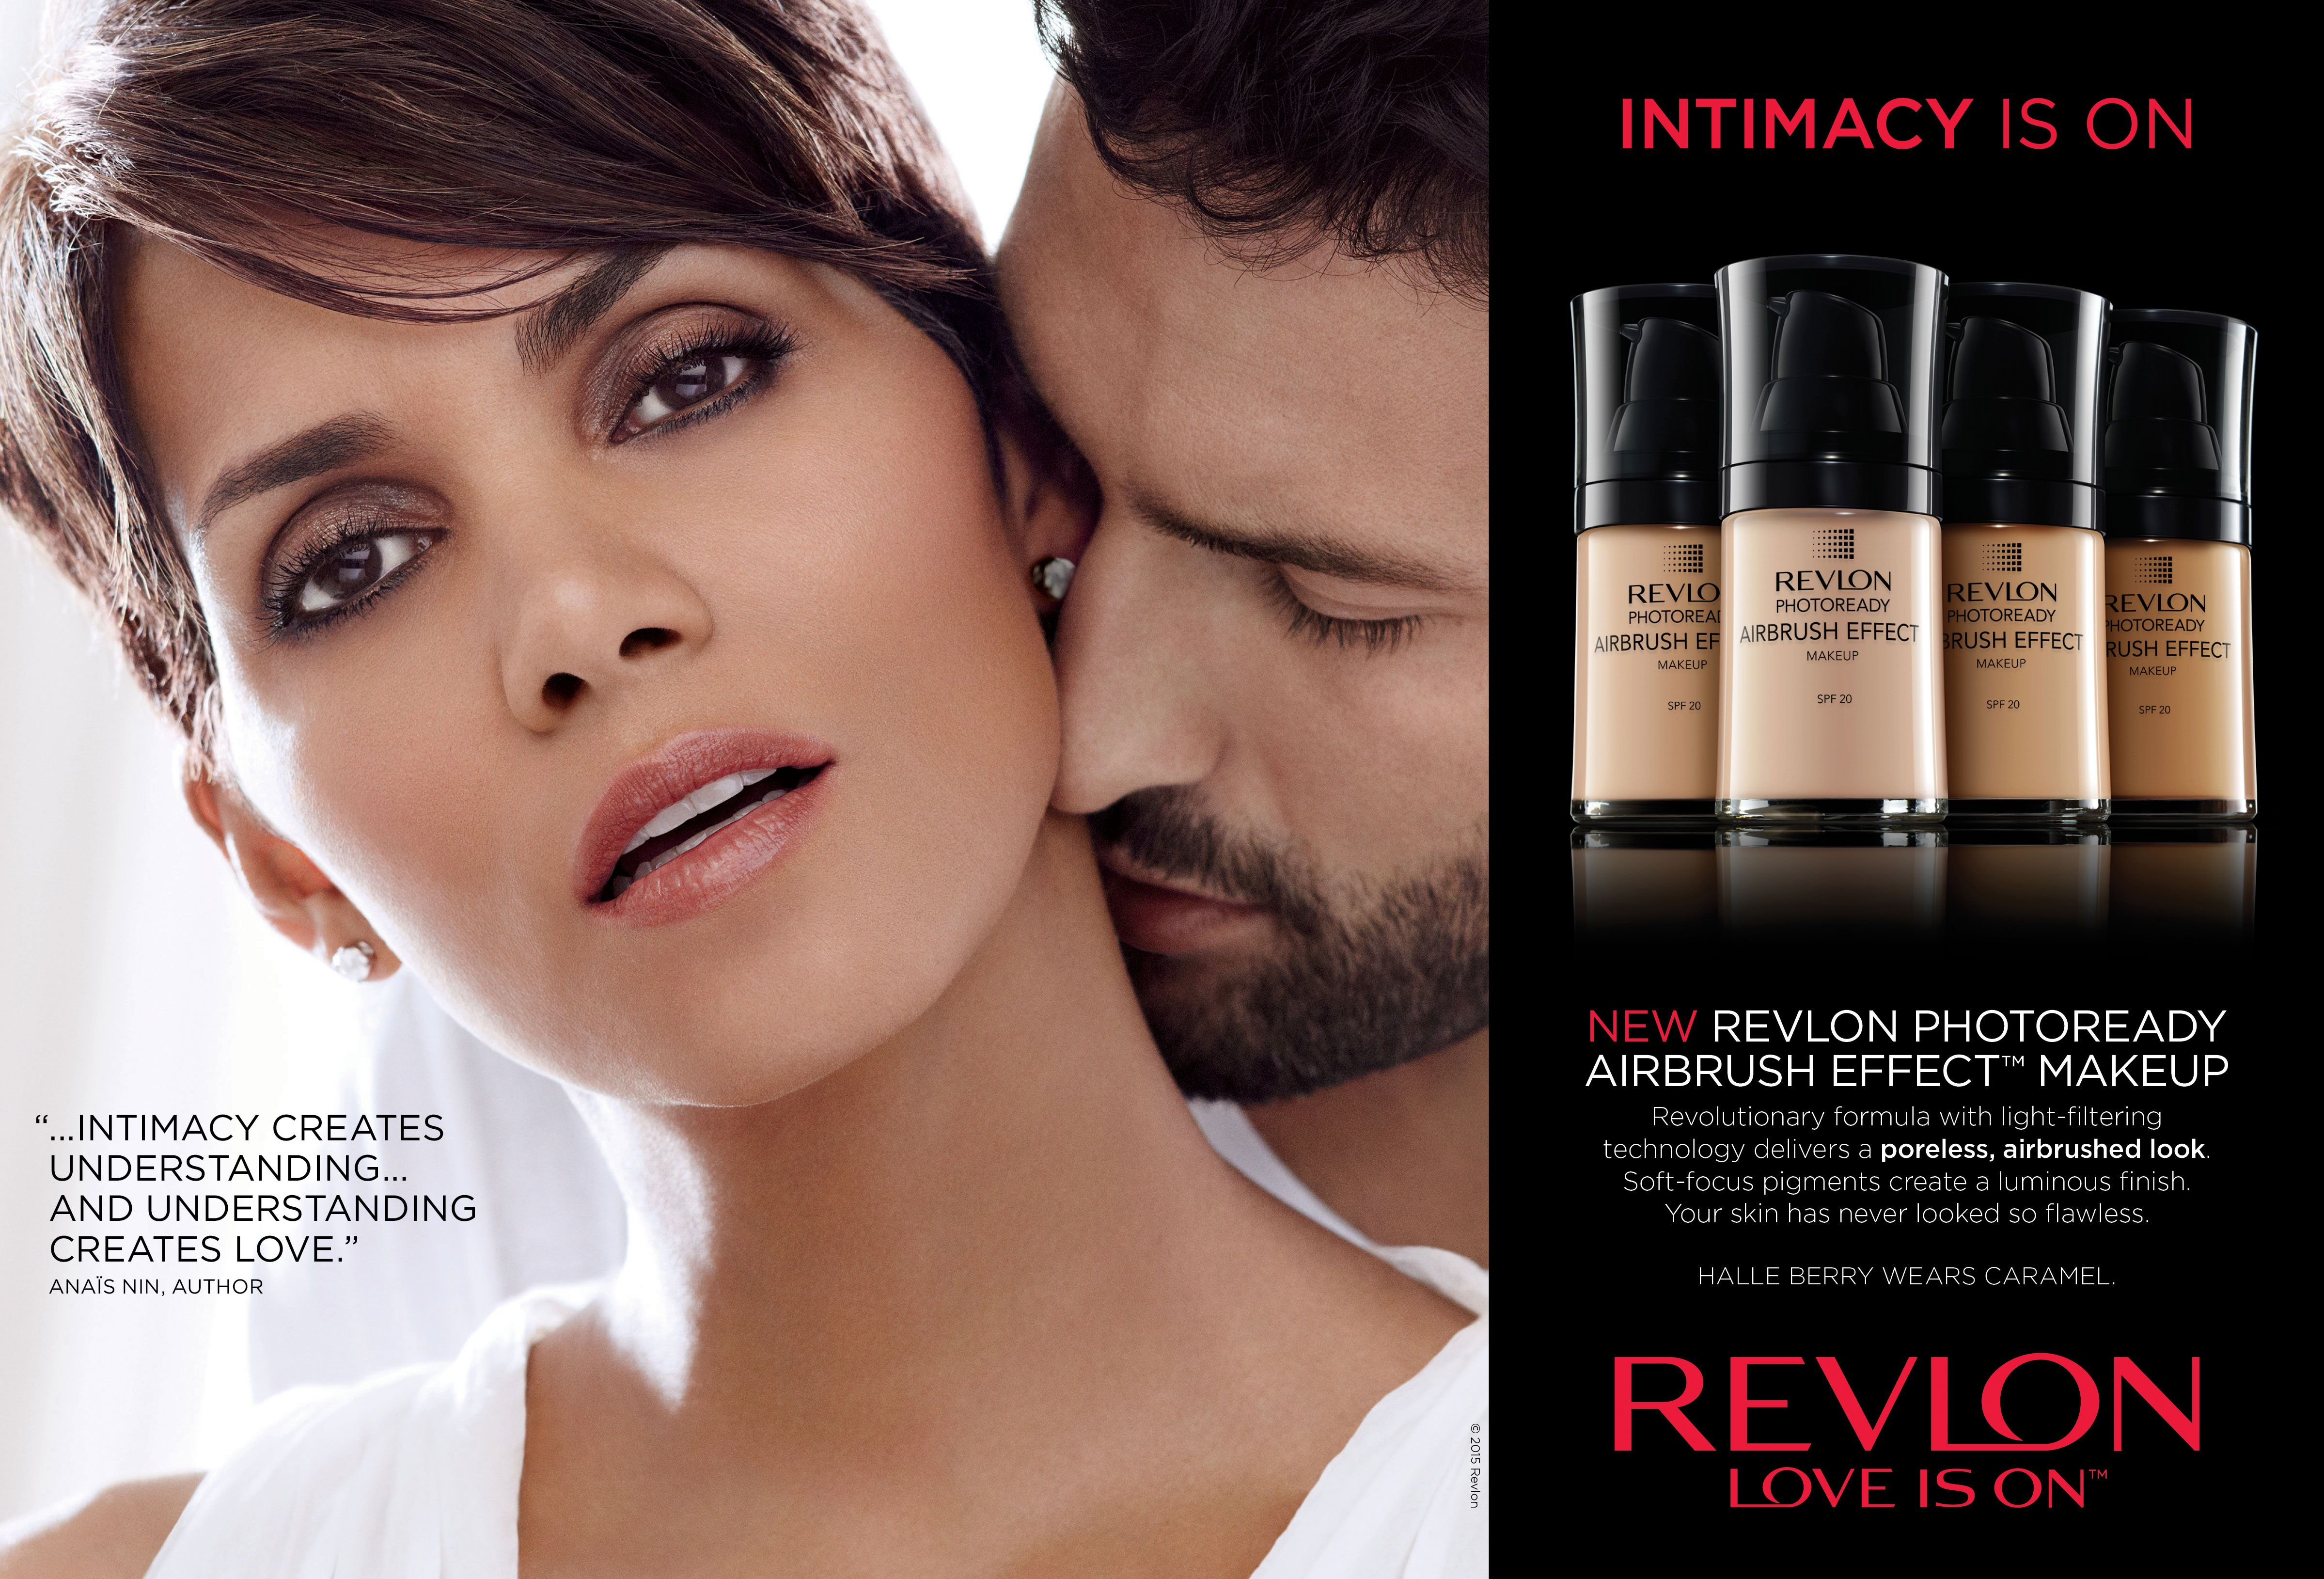 Halle Berry Wears Revlon Makeup In Caramel Color For Mac Photoready Airbrush Effect Nude